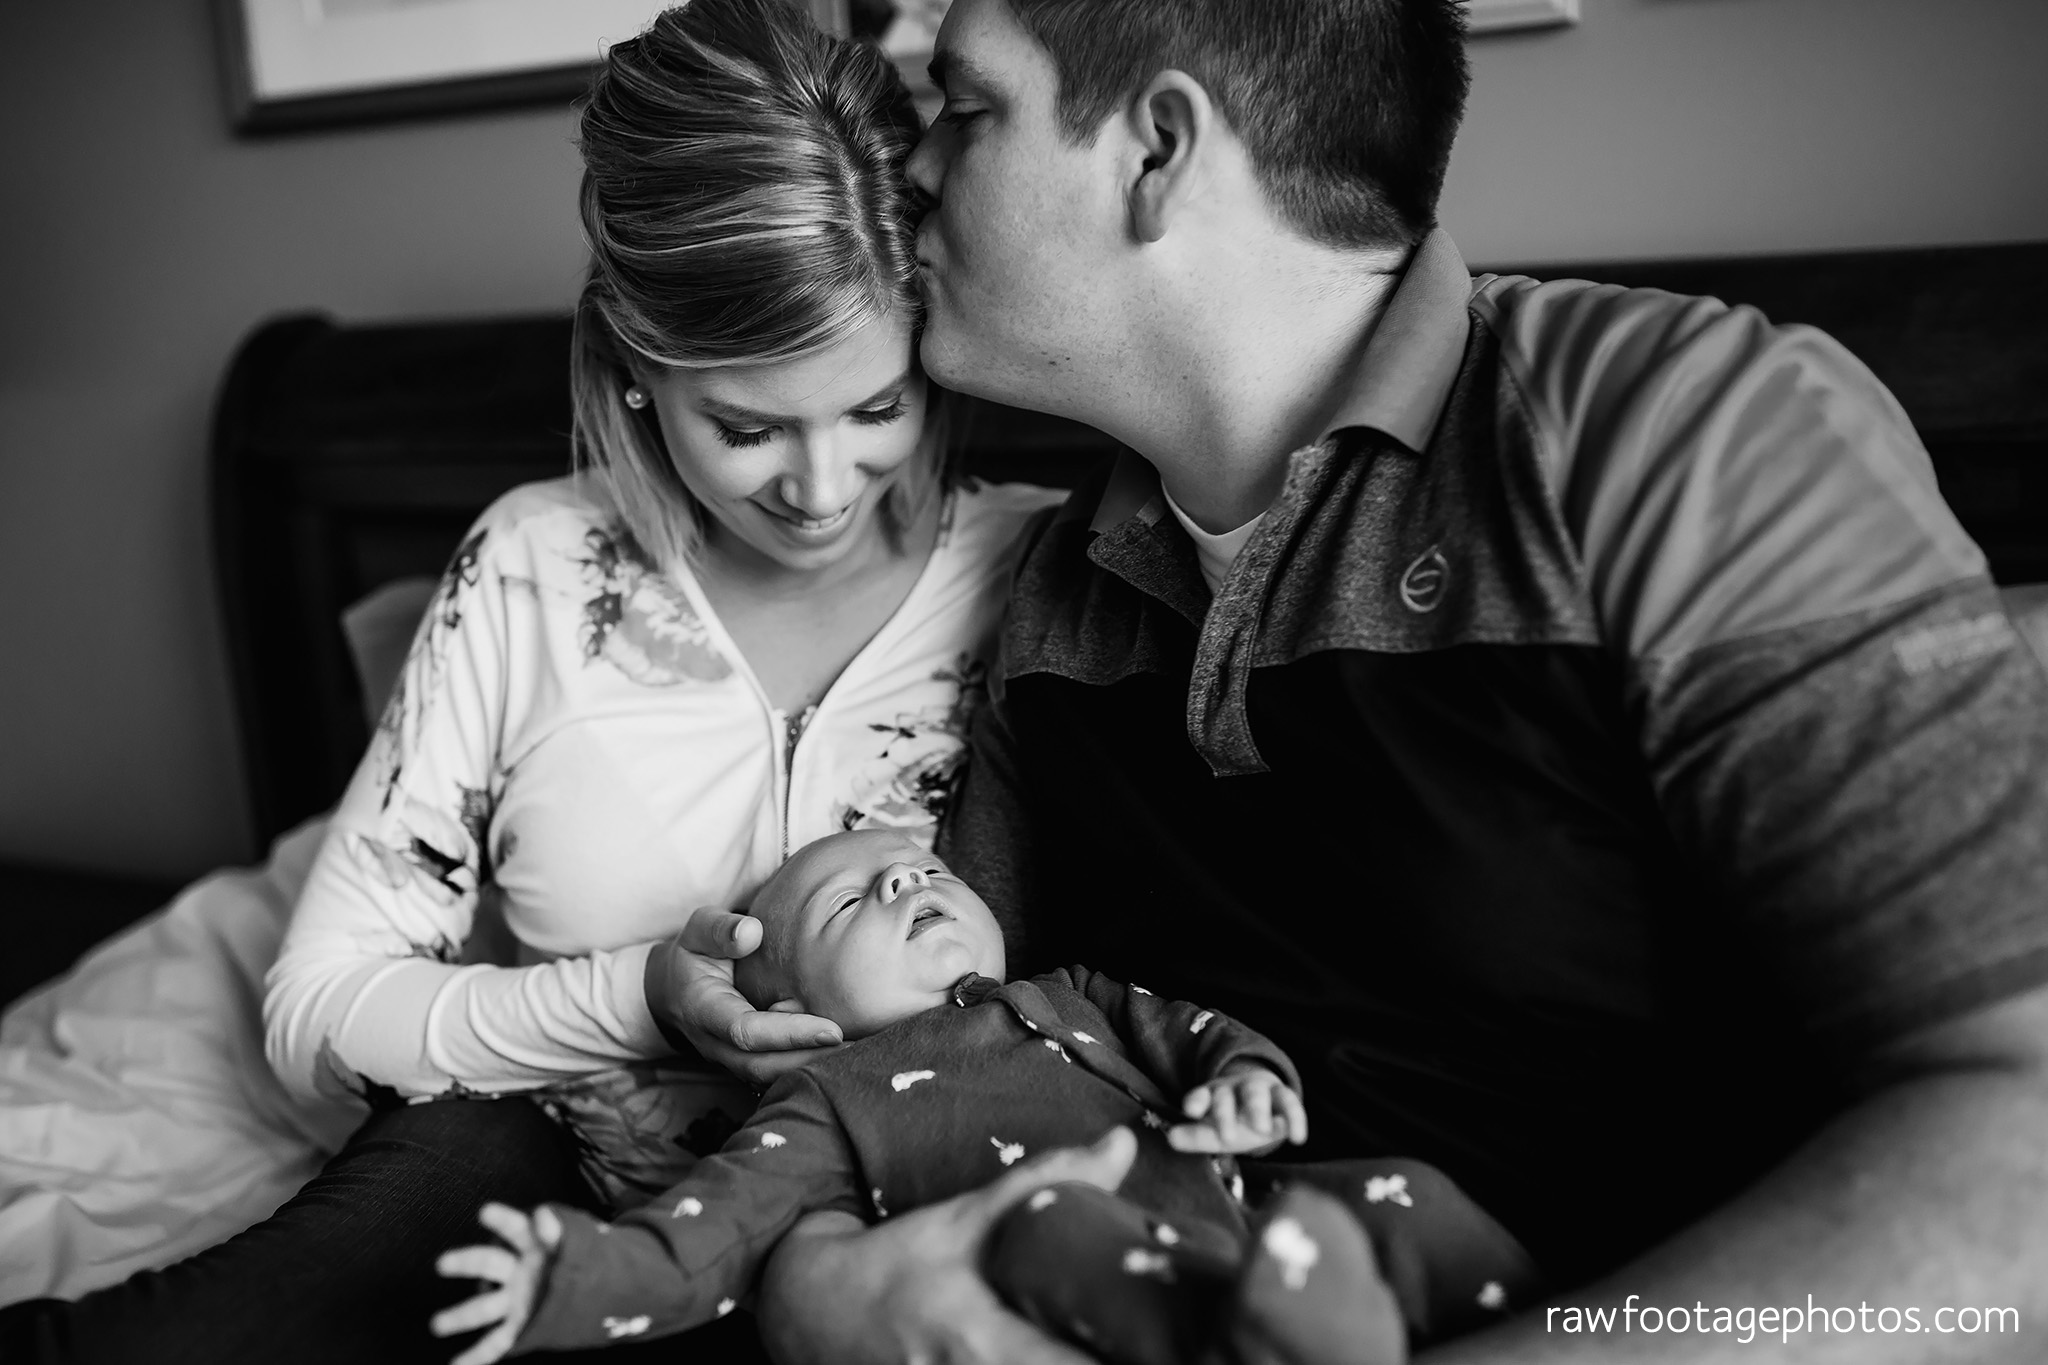 london_ontario_newborn_photographer-newborn_lifestyle_session-in_home_newborn_photos-raw_footage_photography008.jpg